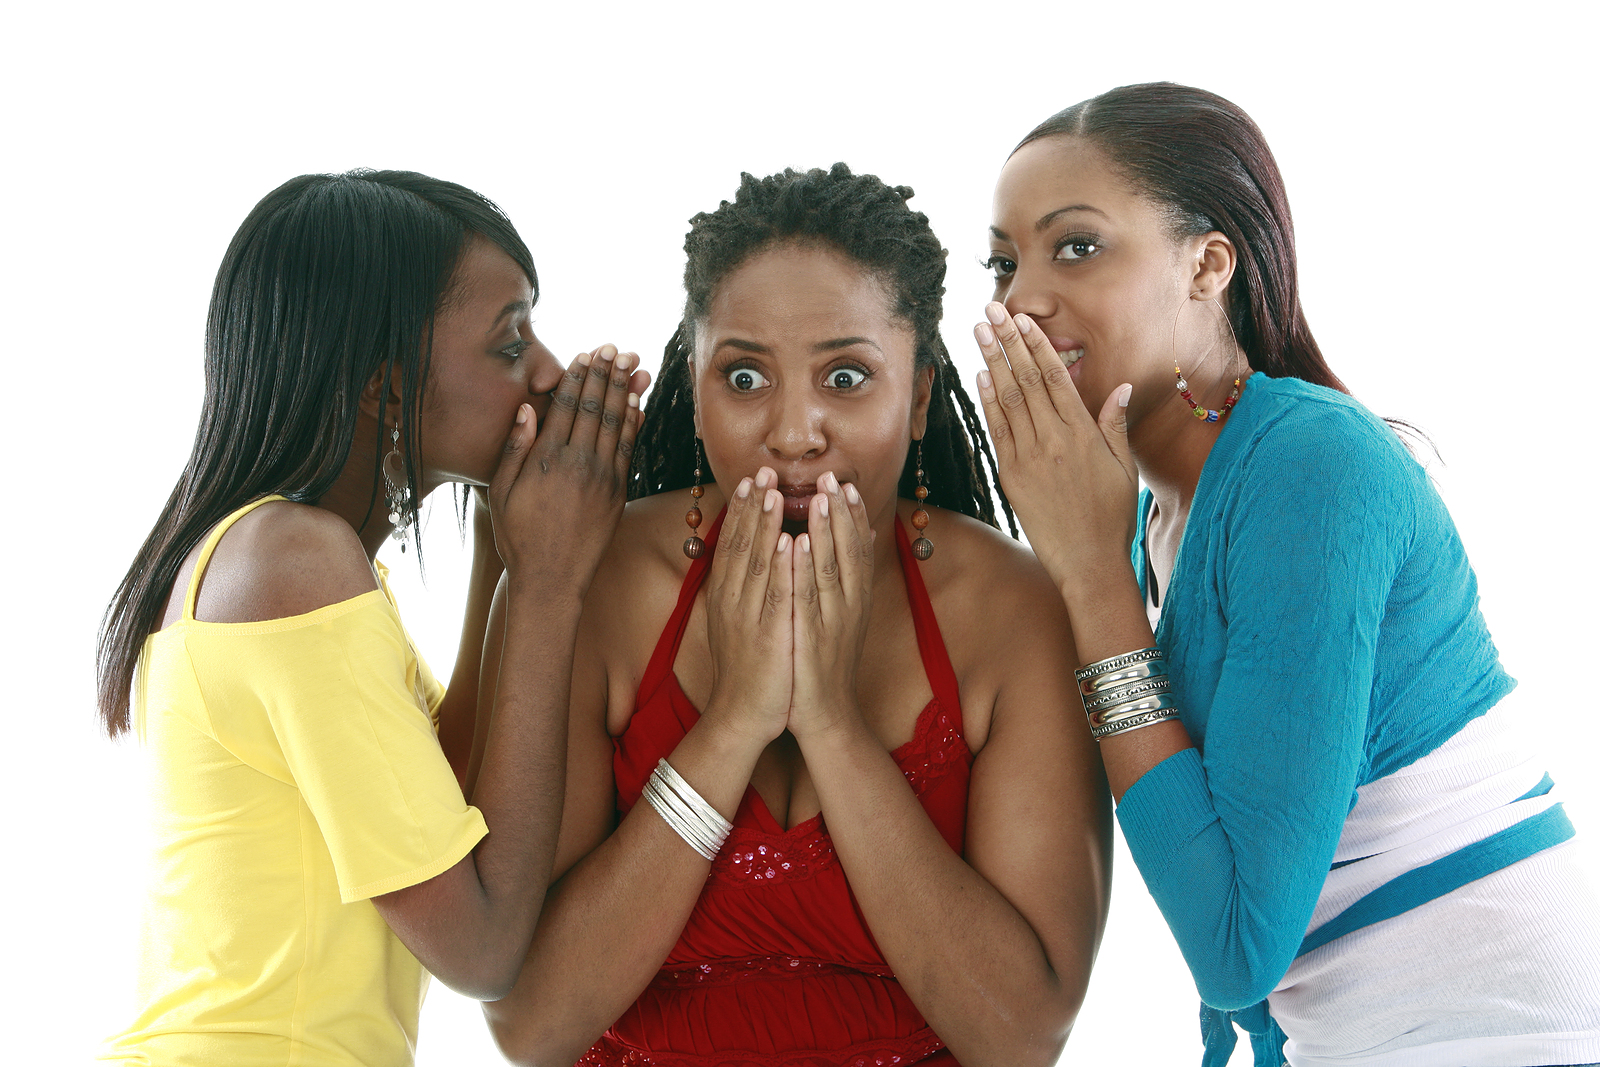 Gossip is good for your health